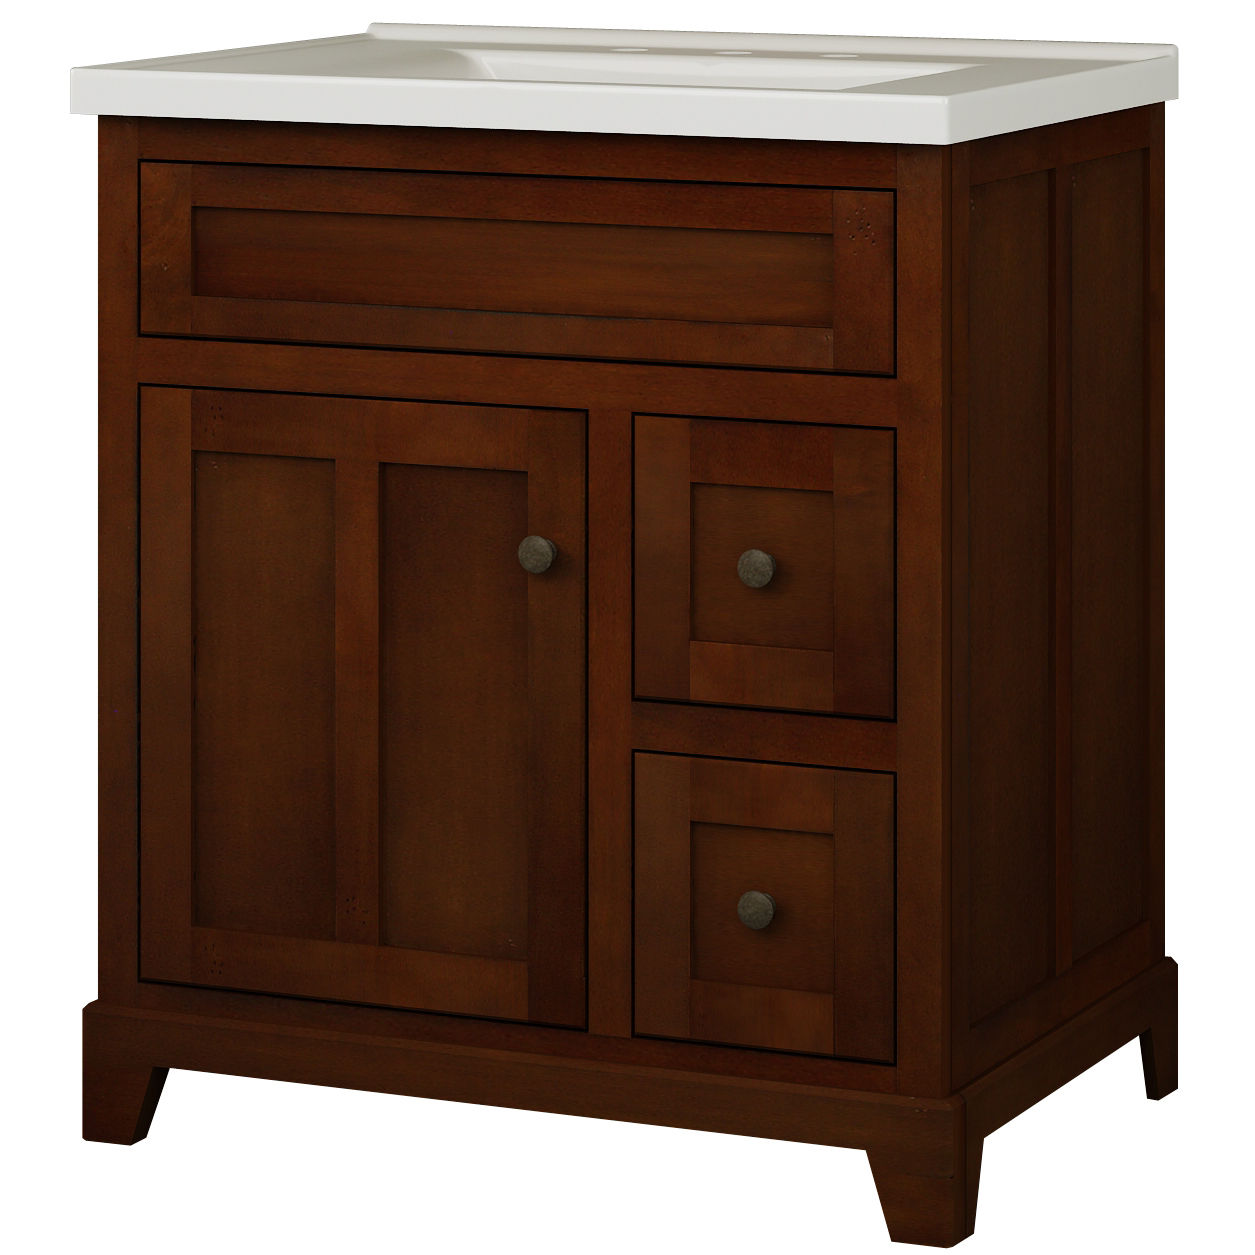 Miseno Mvgh30com Smoked Amber 30 Bathroom Vanity Set Cabinet Stone Top And Medicine Included Faucetdirect Com